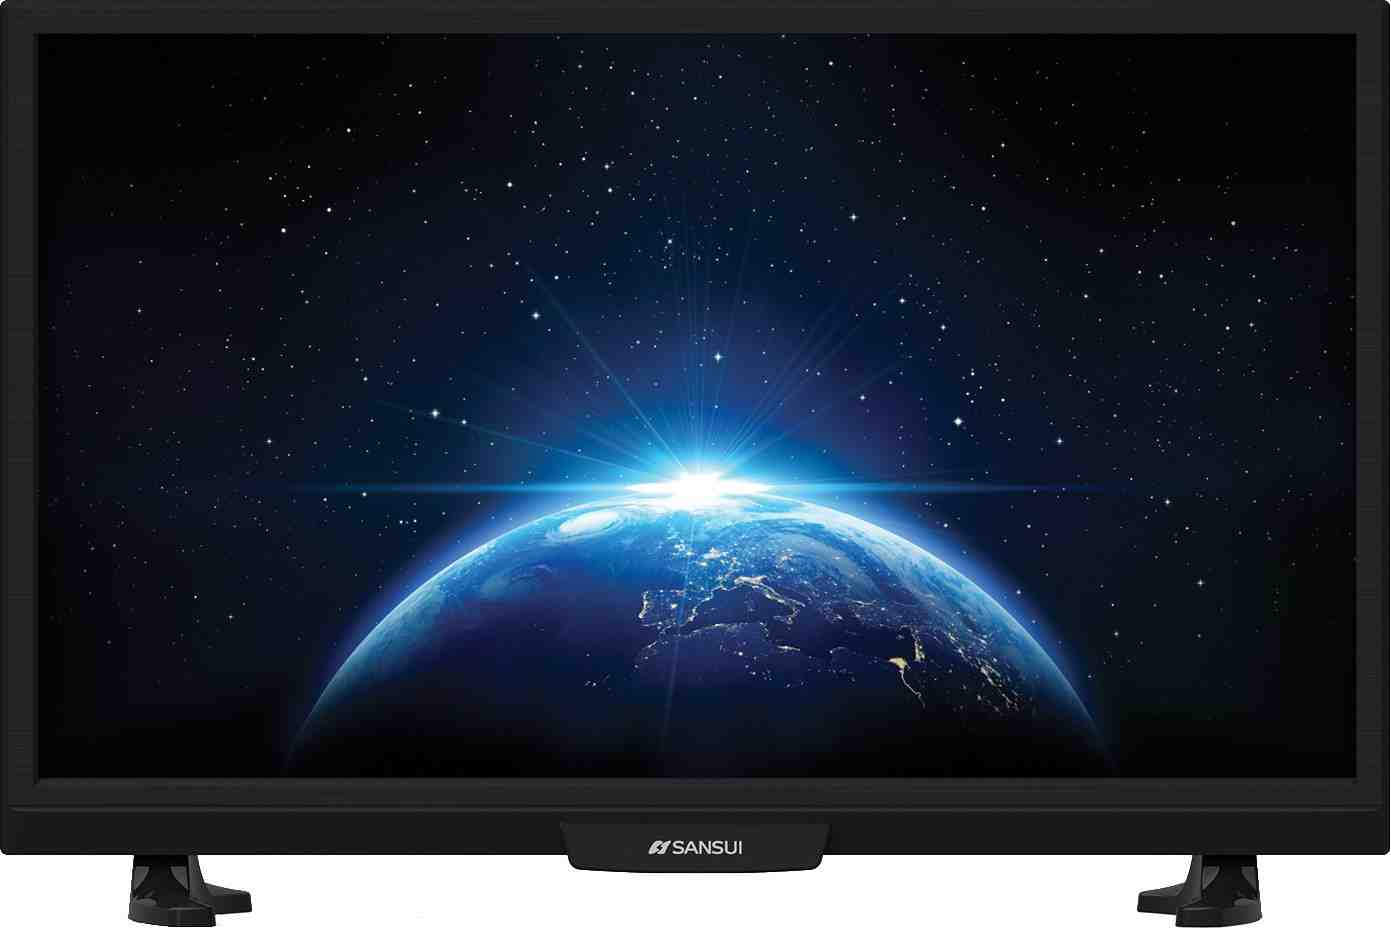 Best price on Sansui SMC40FB17XAF 40 Inch Full HD LED TV  in India